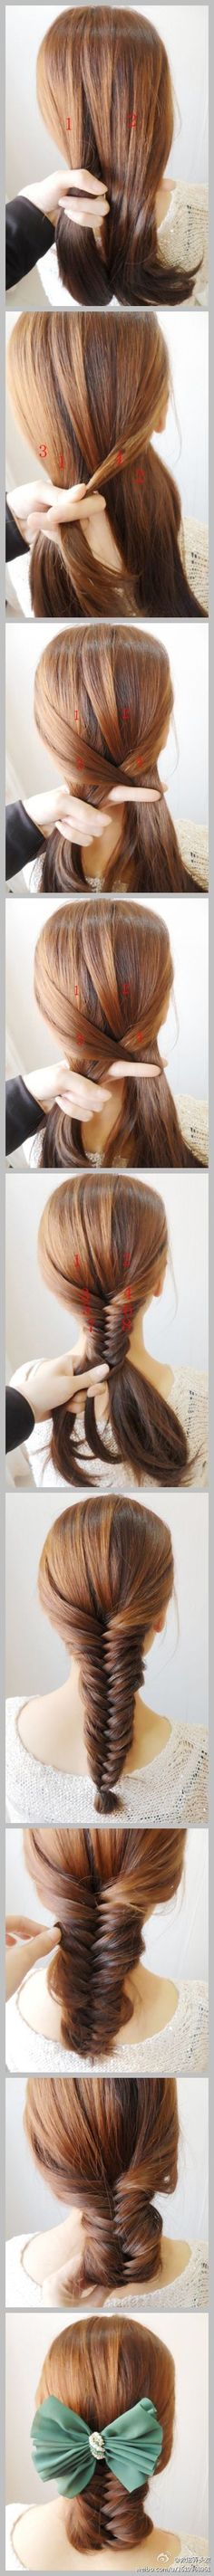 Perfect fishbraid updo